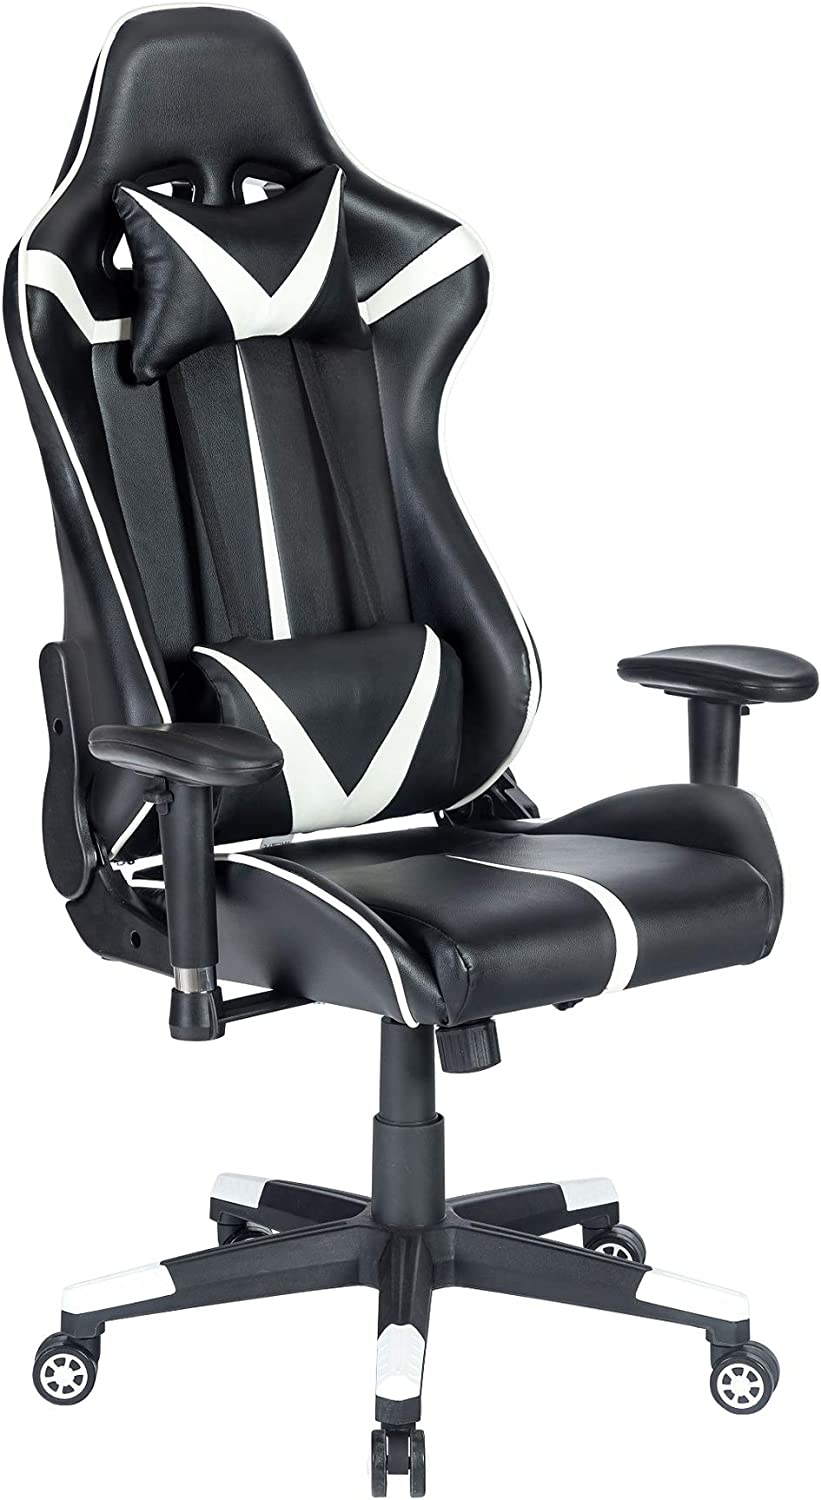 High Back Racing PC Computer Desk Office Chair Swivel Ergonomic Executive Leather Chair with Adjustable Armrest 8332Black Blue Whale Massage Gaming Chair with Footrest